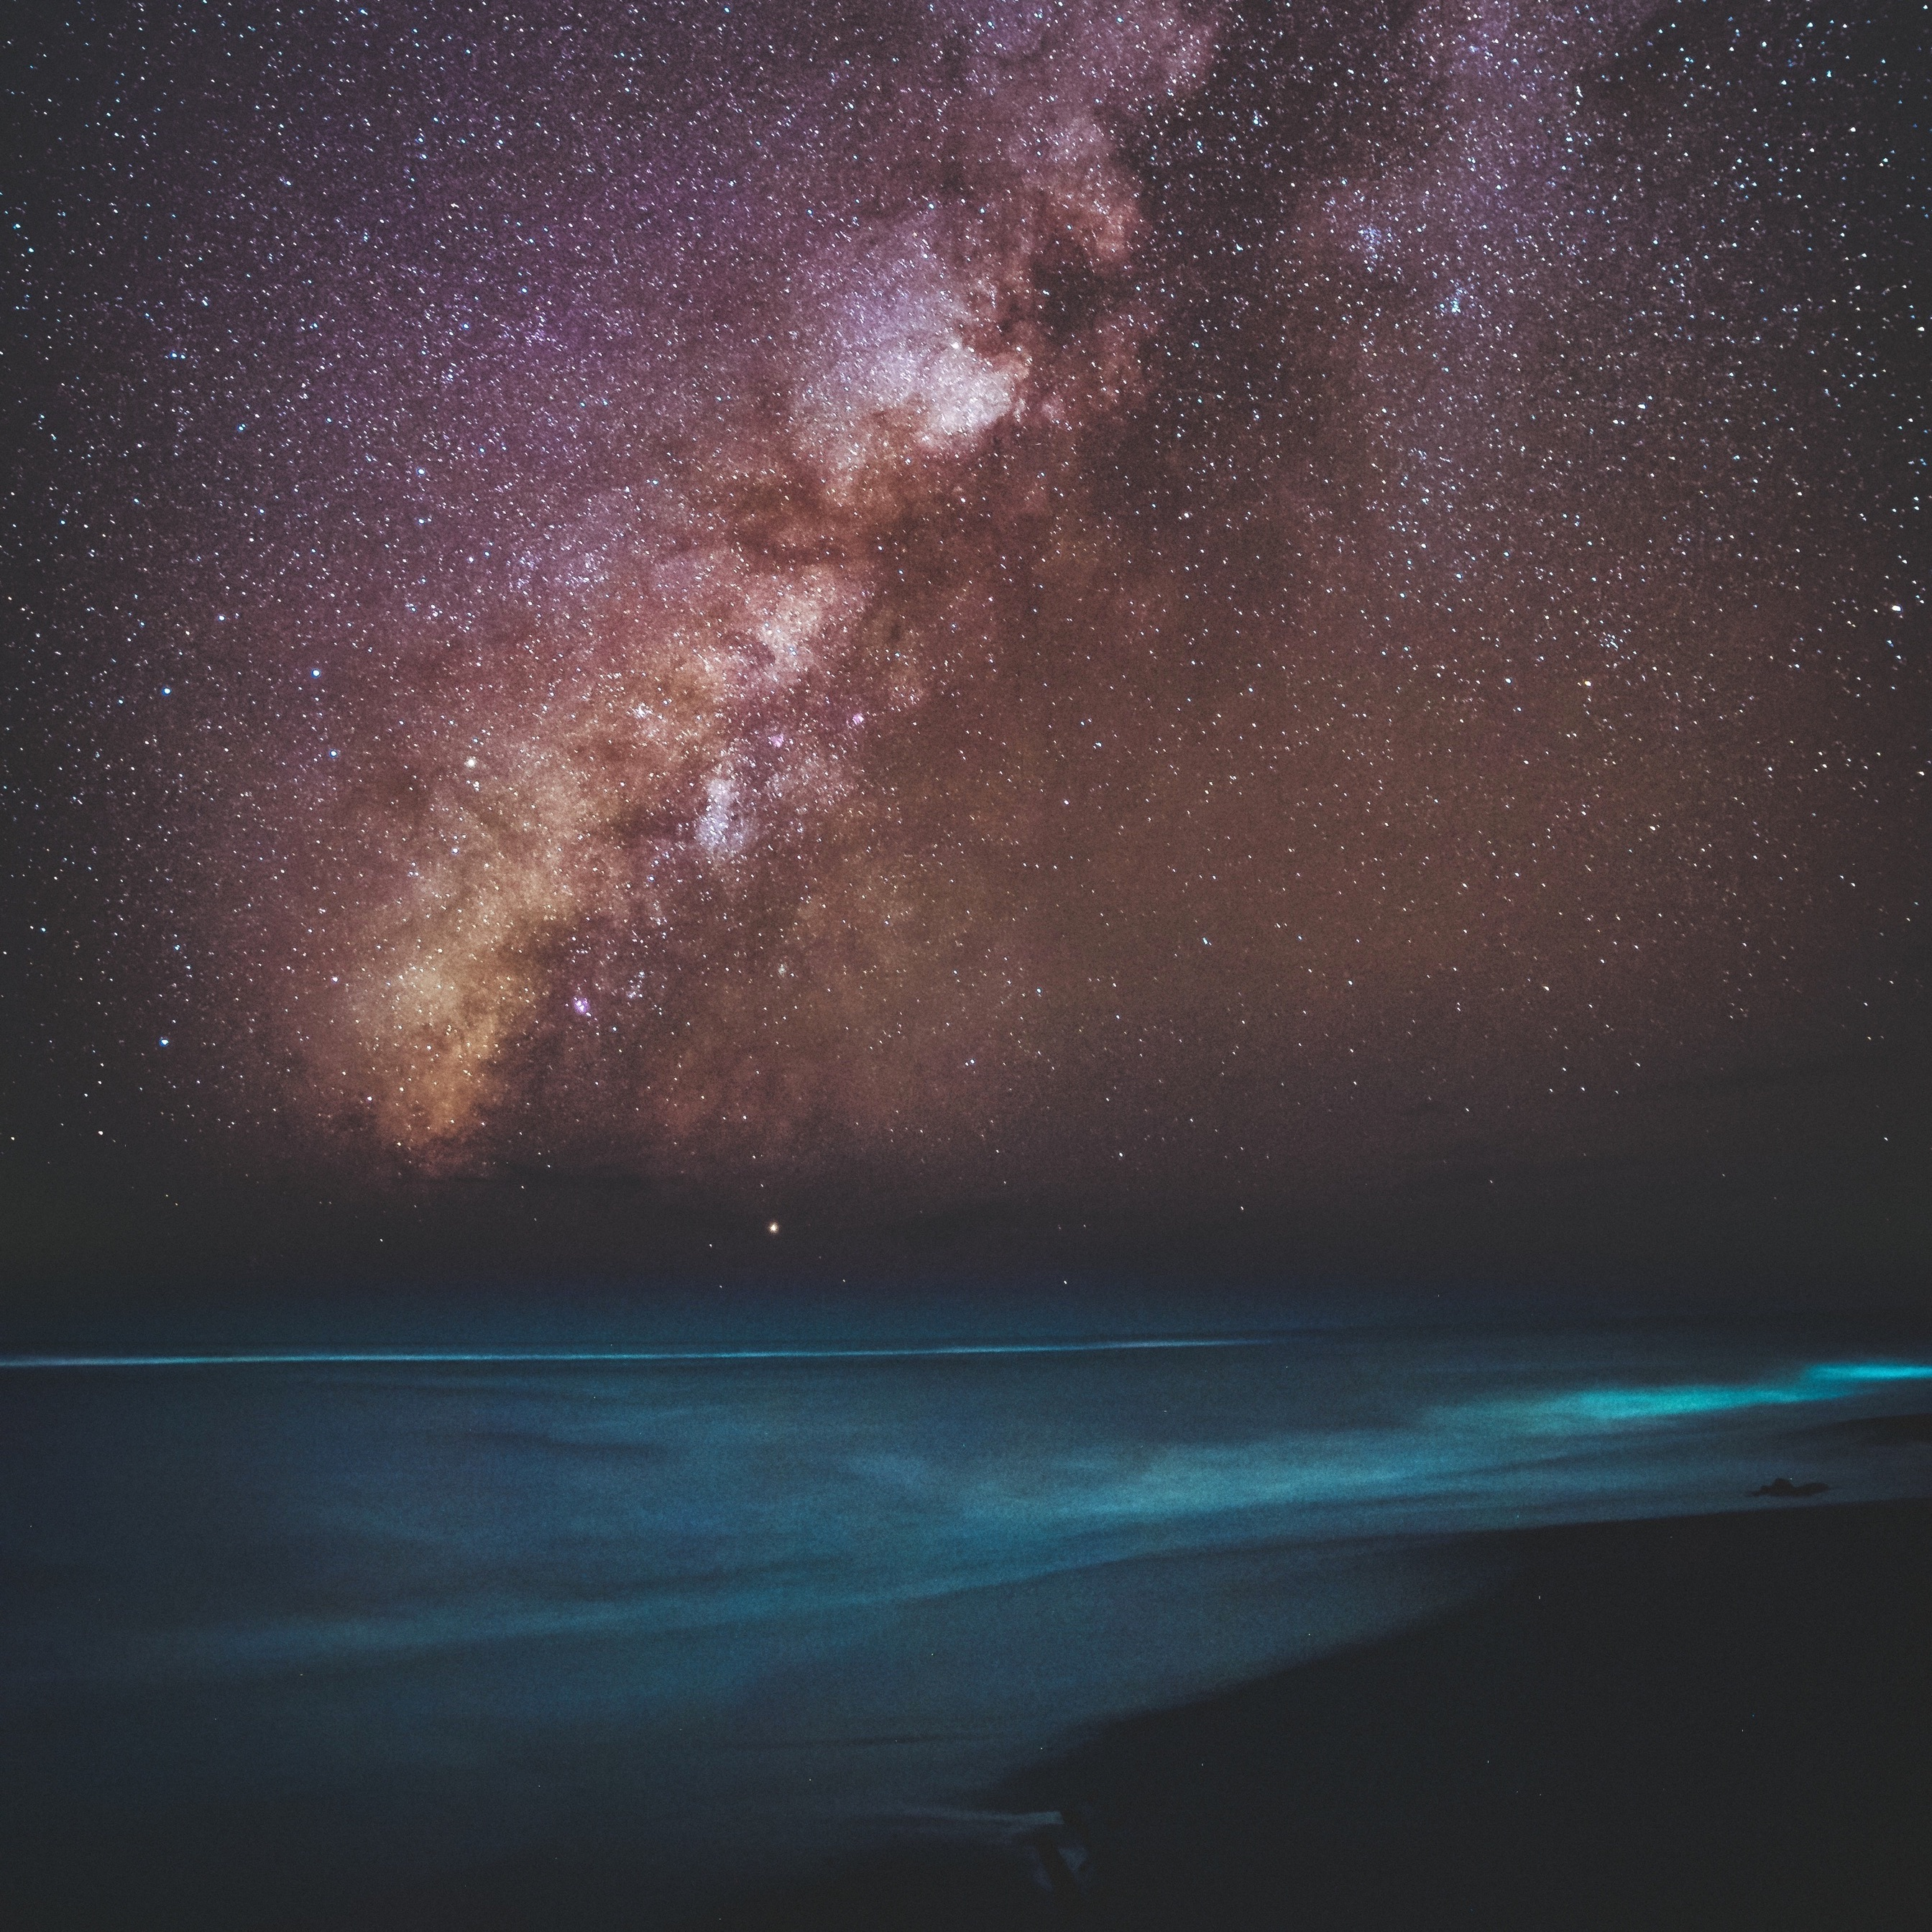 Wallpaper Weekends Starry Night Wallpapers For Iphone